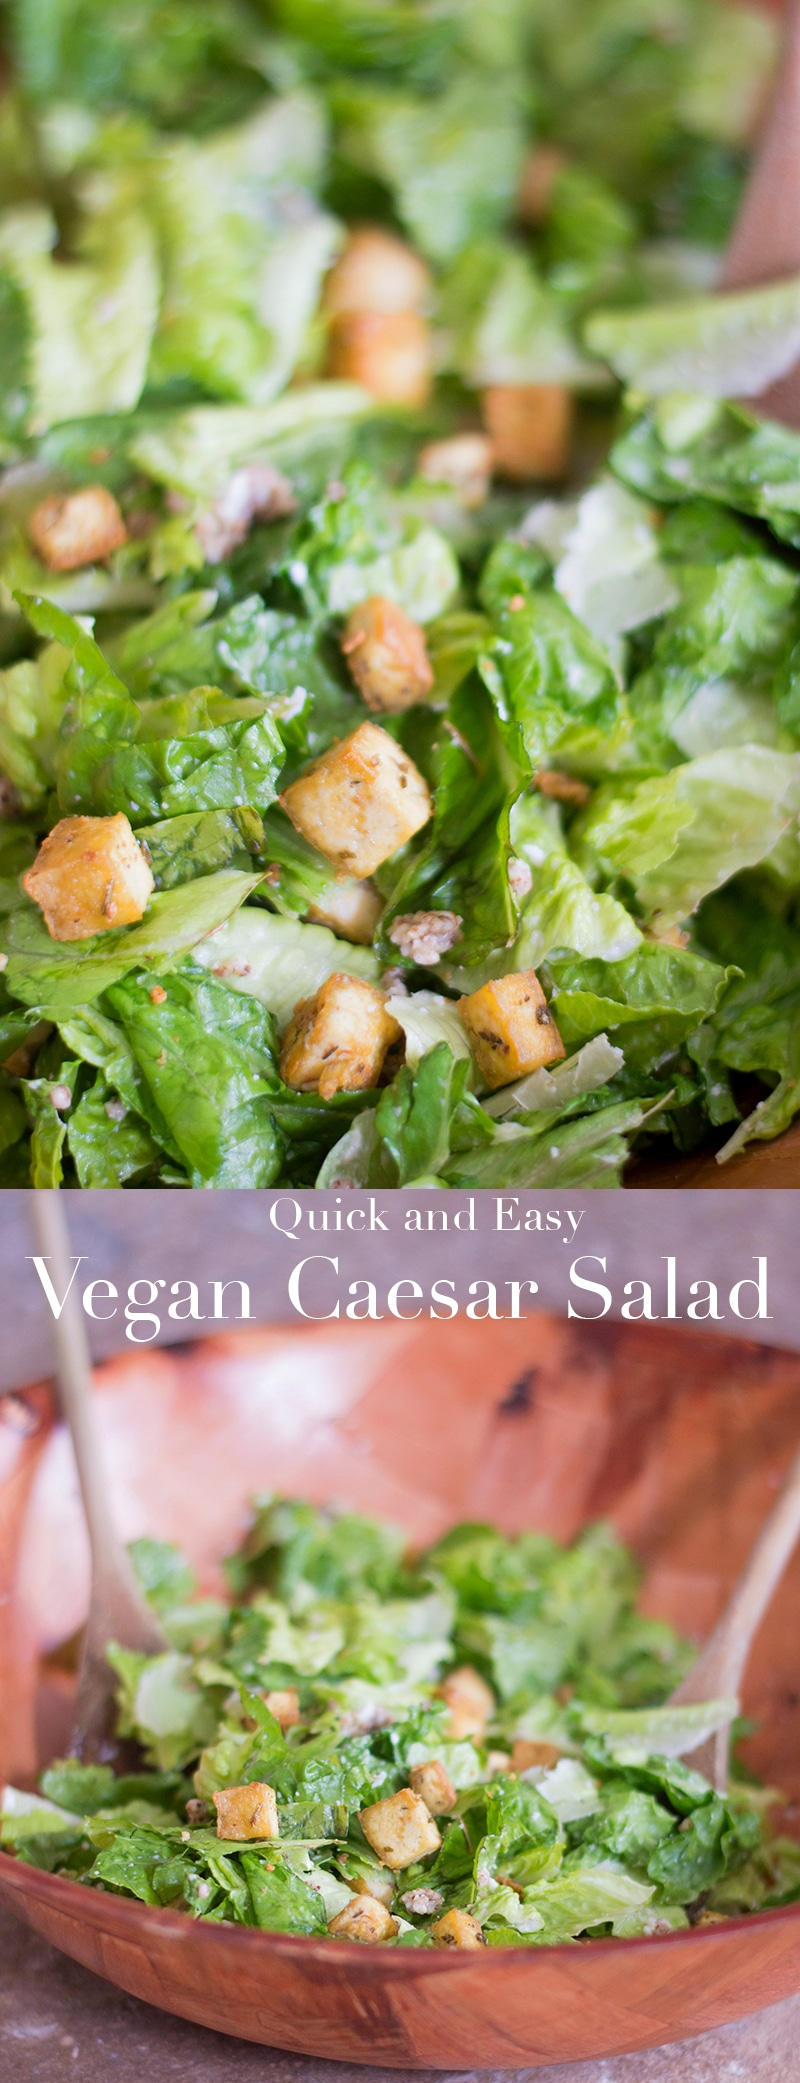 Make this healthy vegan Caesar salad recipe from Healing Tomato for lunch or for a dinner appetizer.  The recipe includes vegan dressing and vegan Parmesan